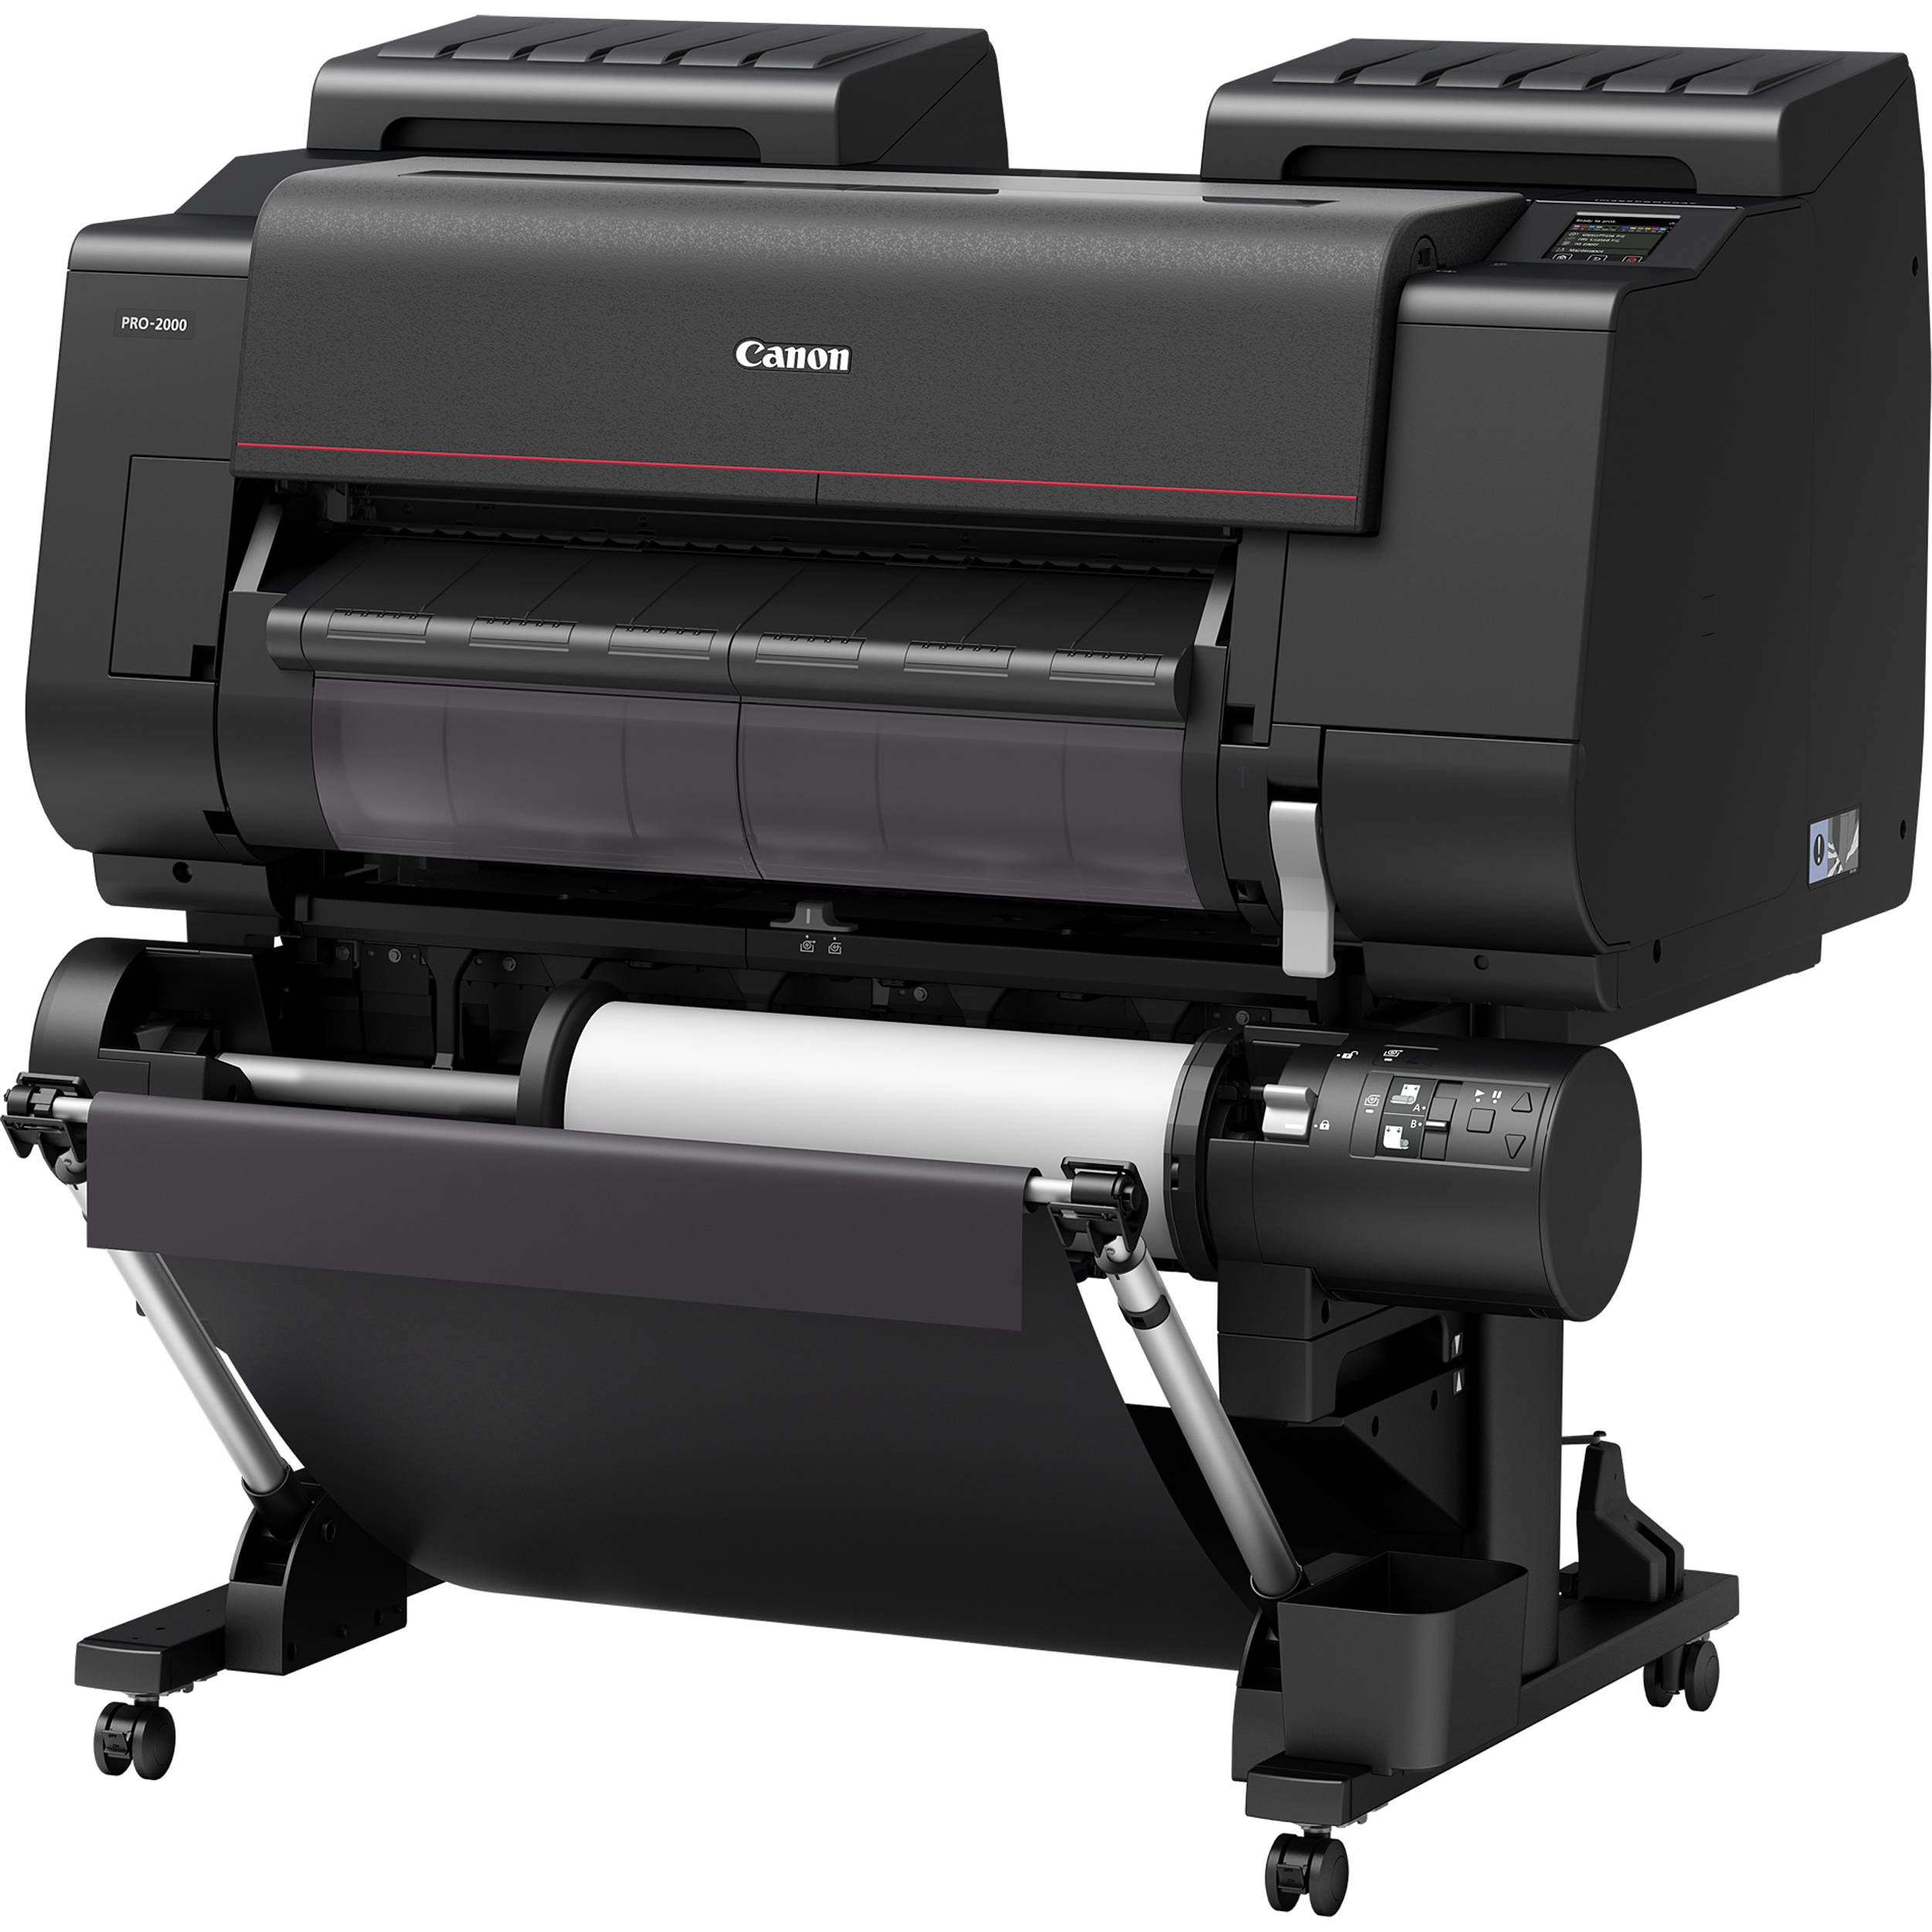 What is the best printer MFD in 6000 to 10000 range?